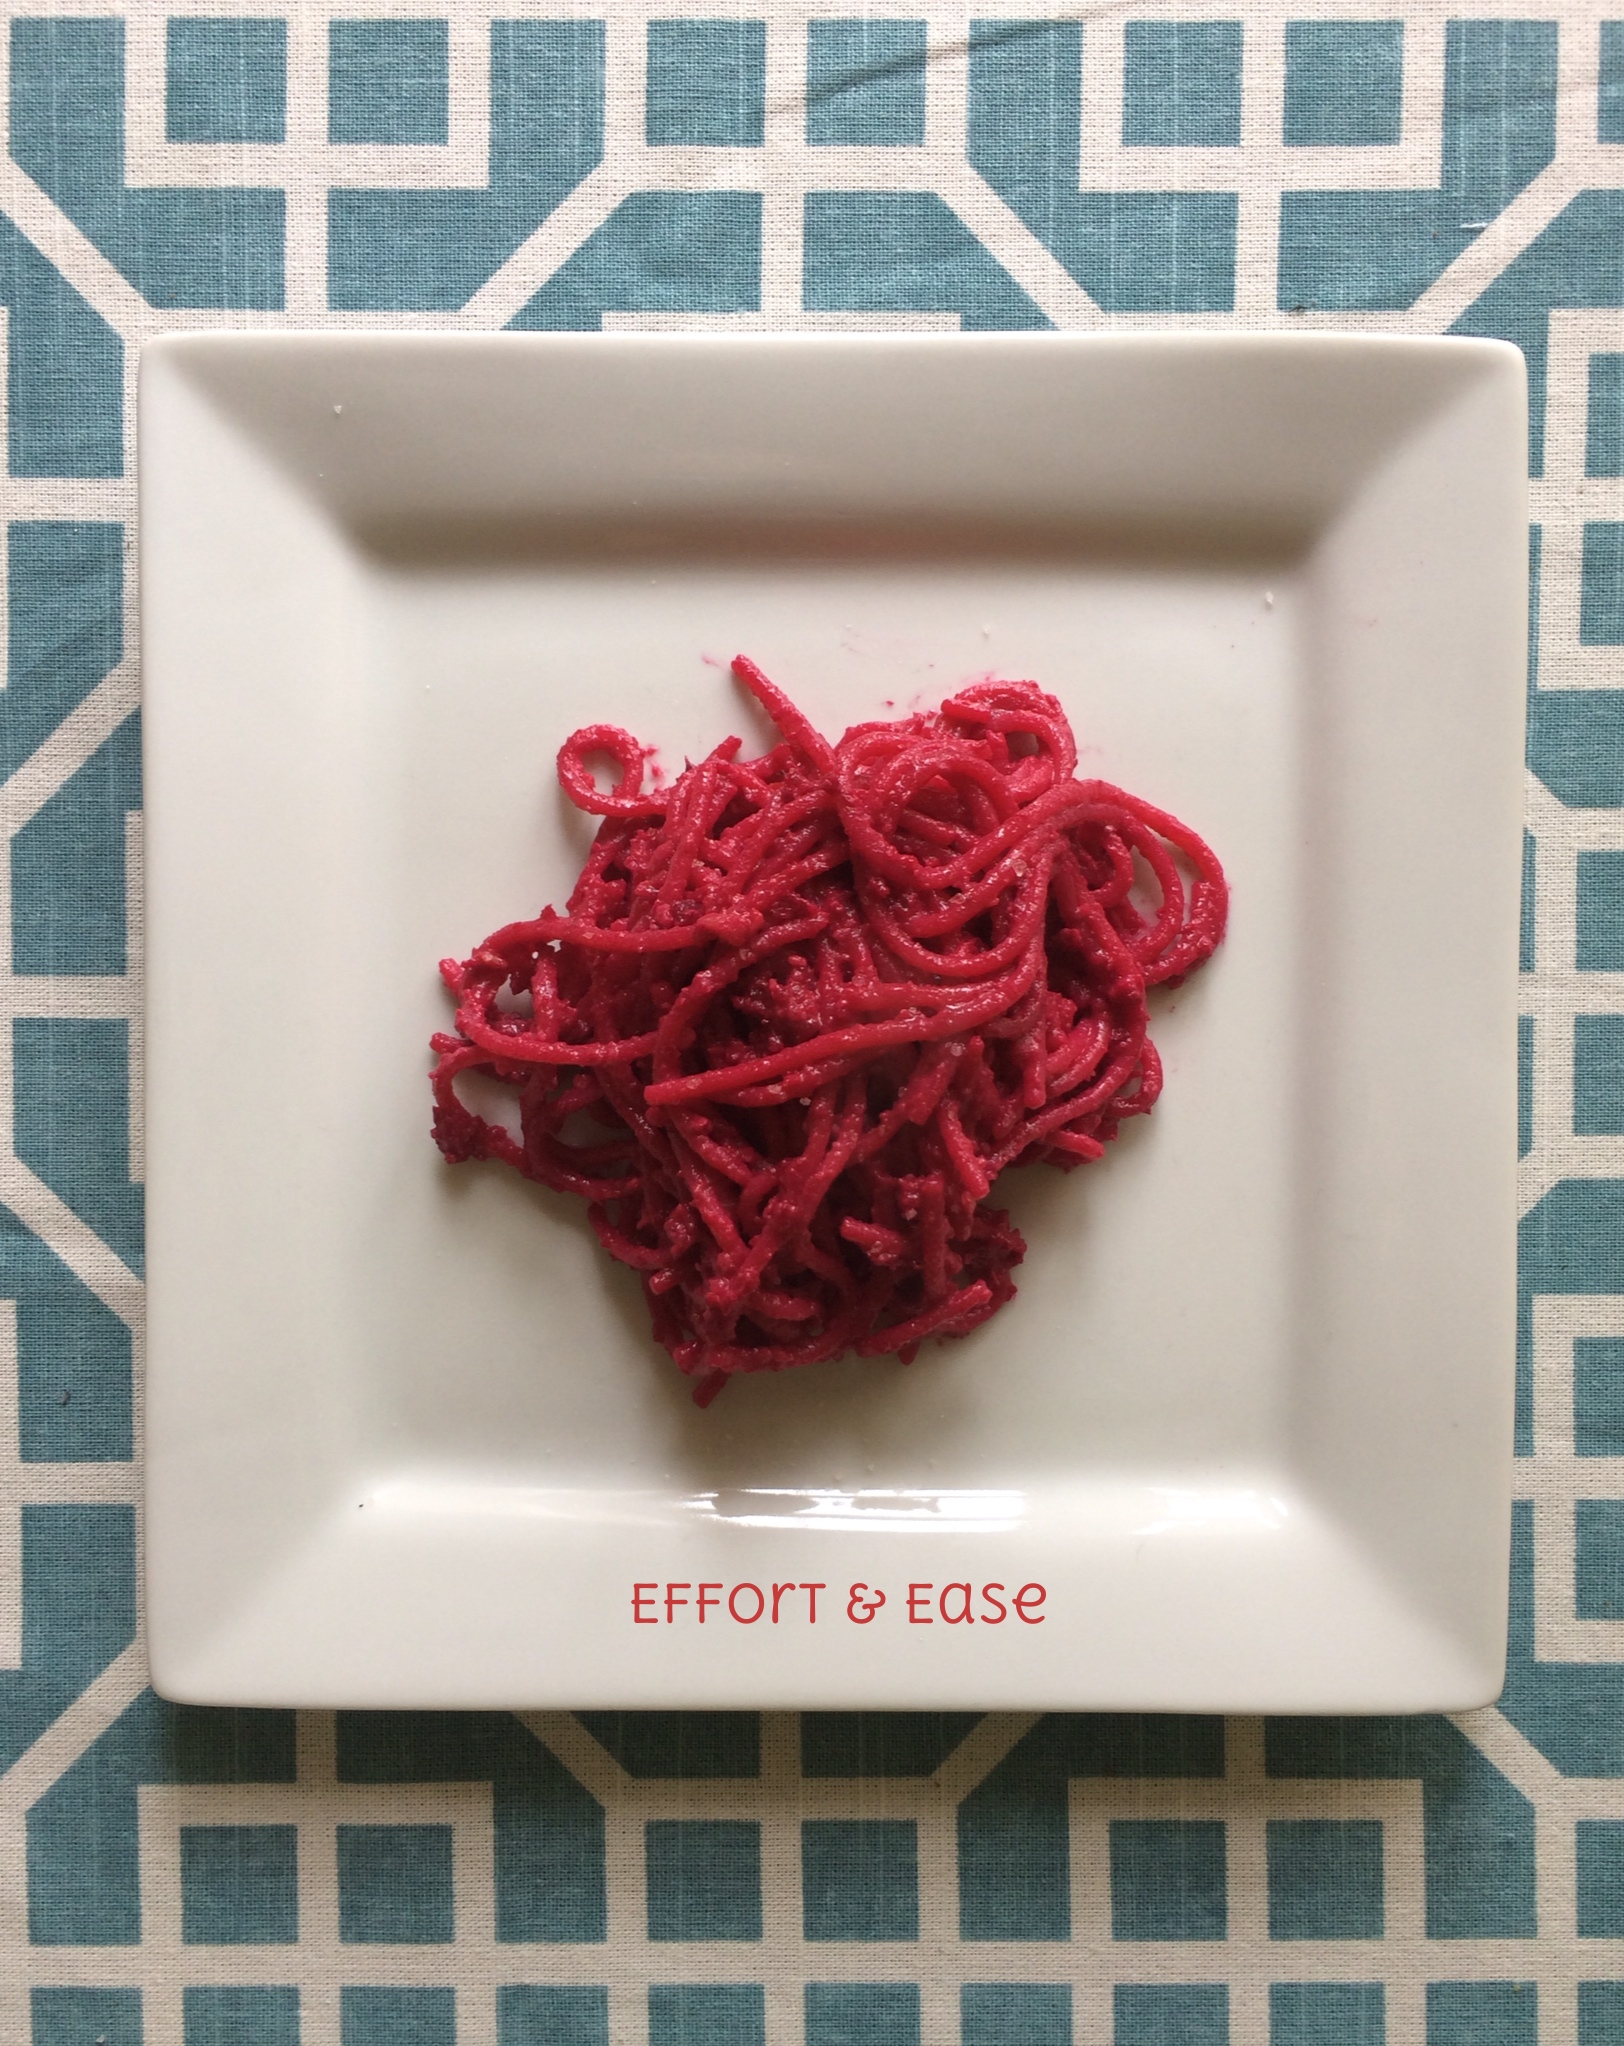 Despite it's looks: this is  not  raw beef! :) It is indeed pureed beets, walnuts & sundried tomatoes. Yum!